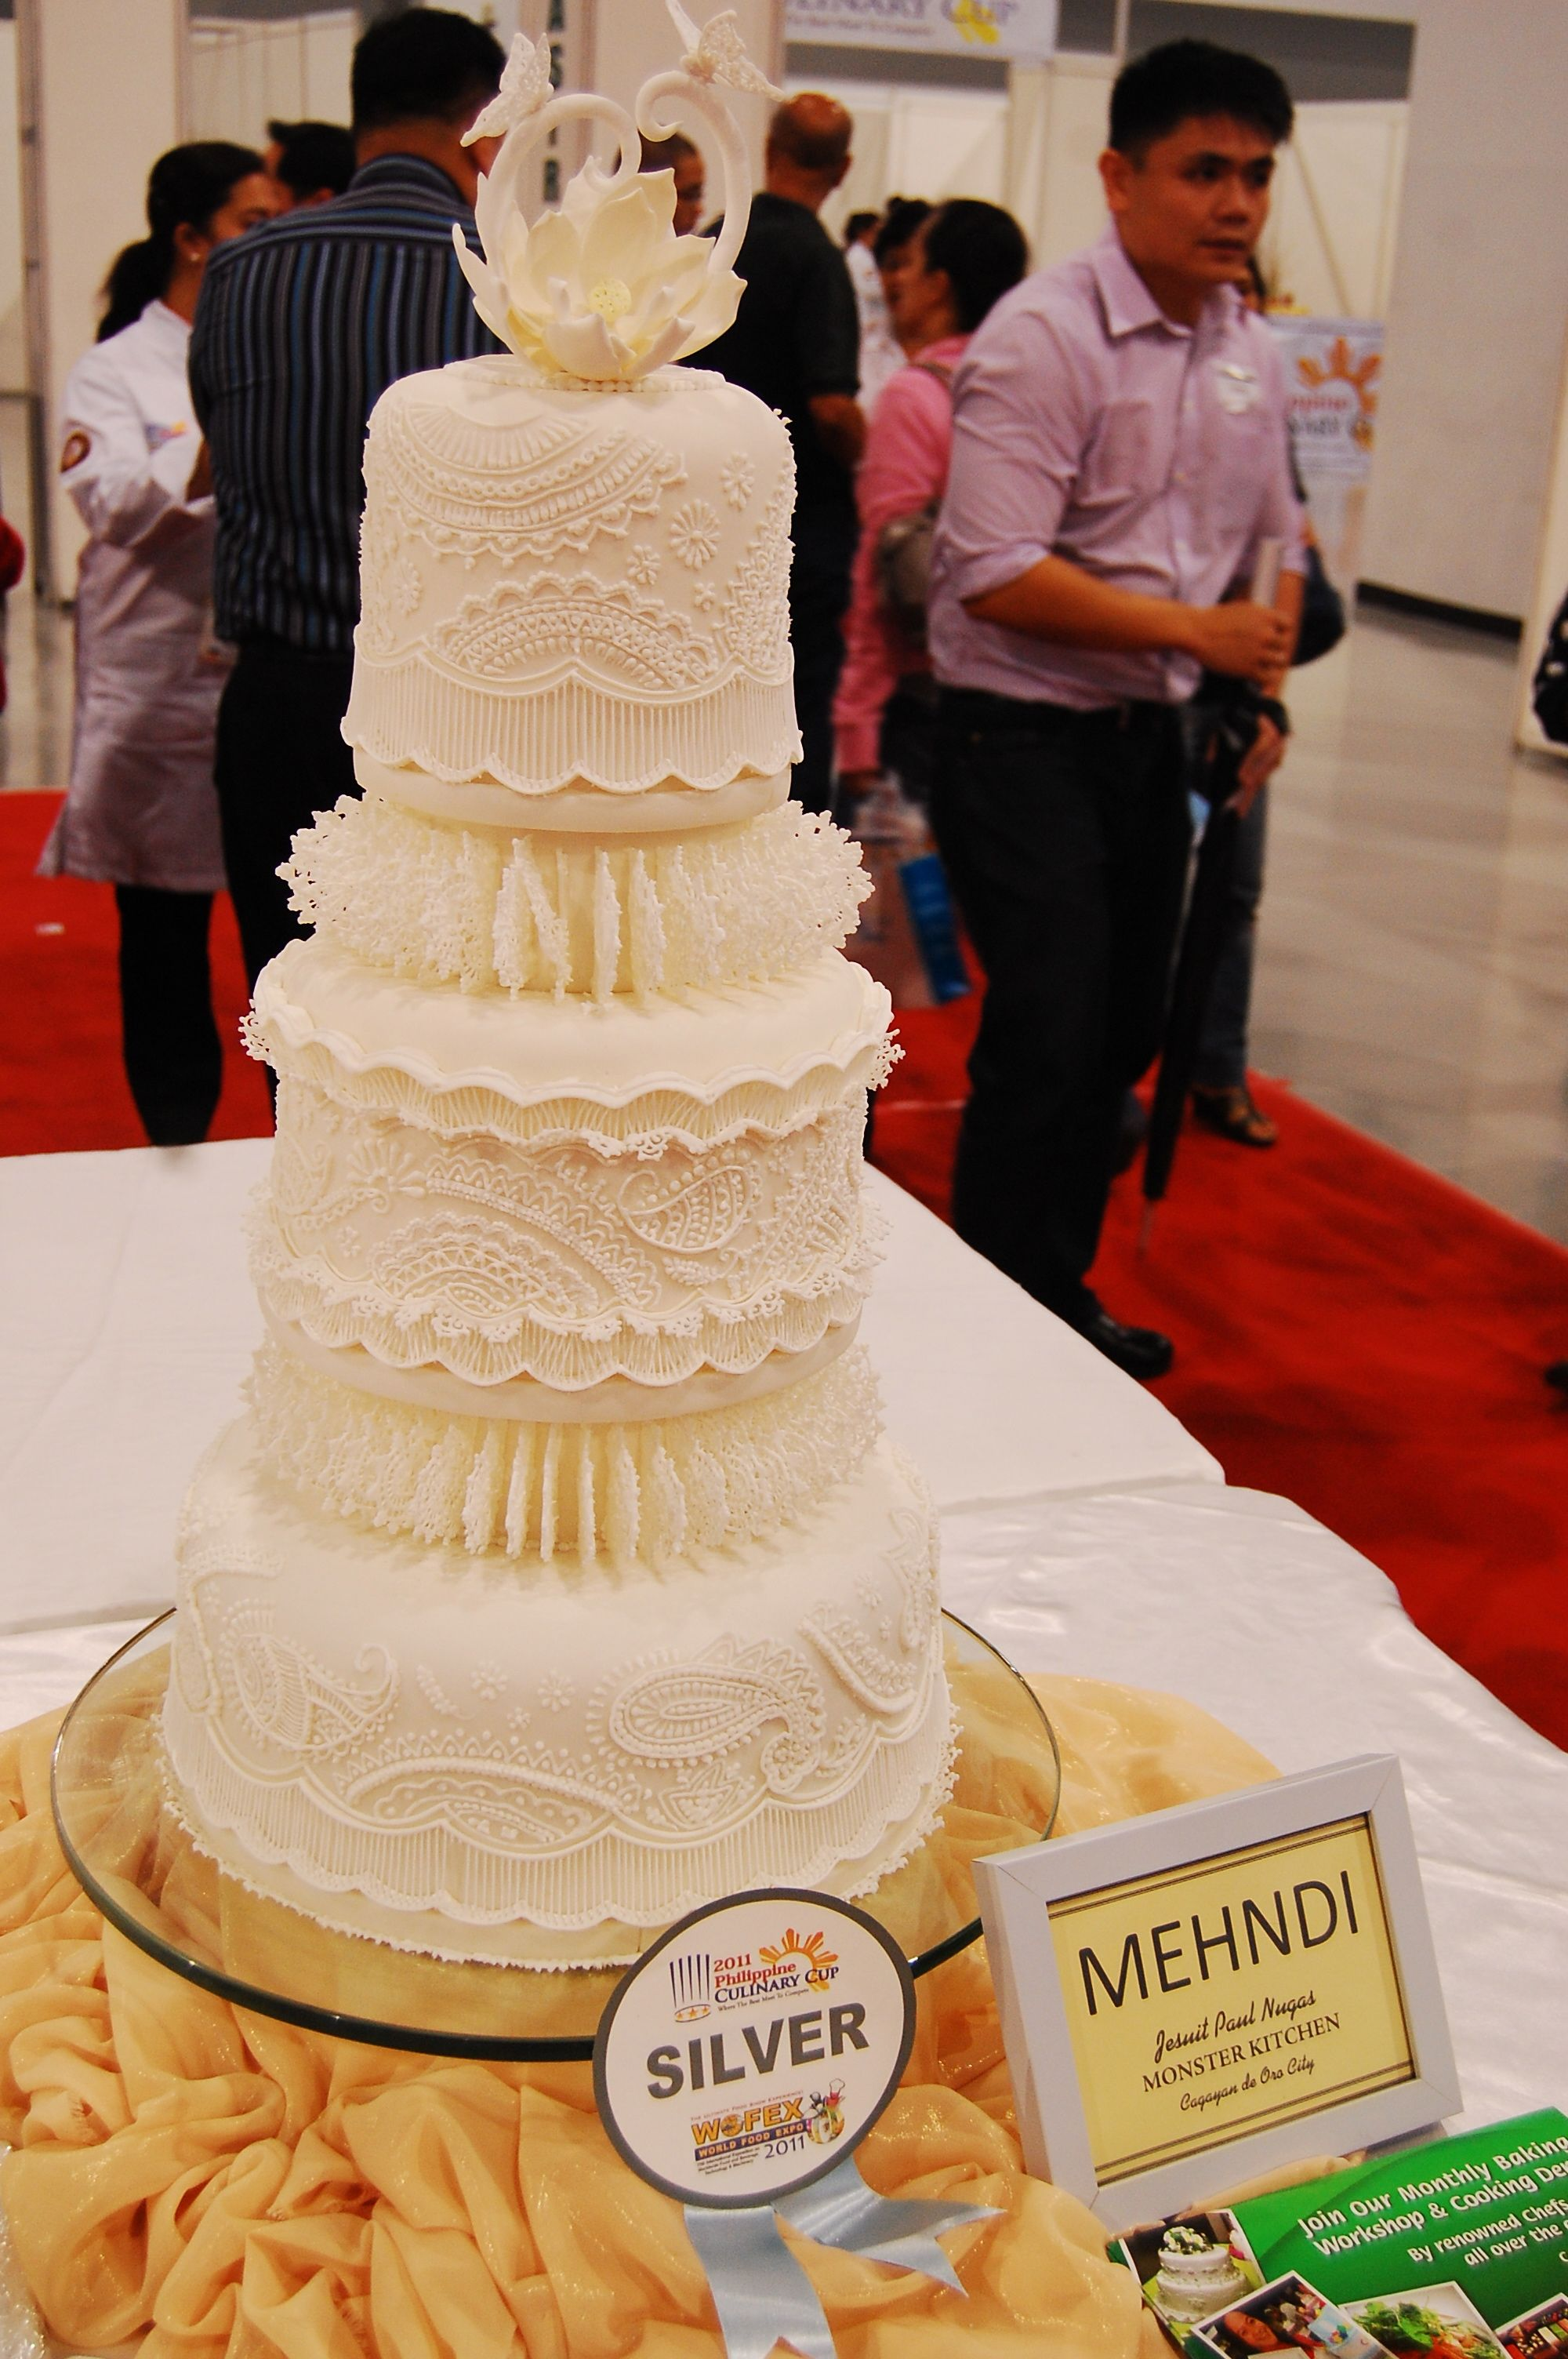 My 2011 Wedding Cake Entry For The 2011 Philippine